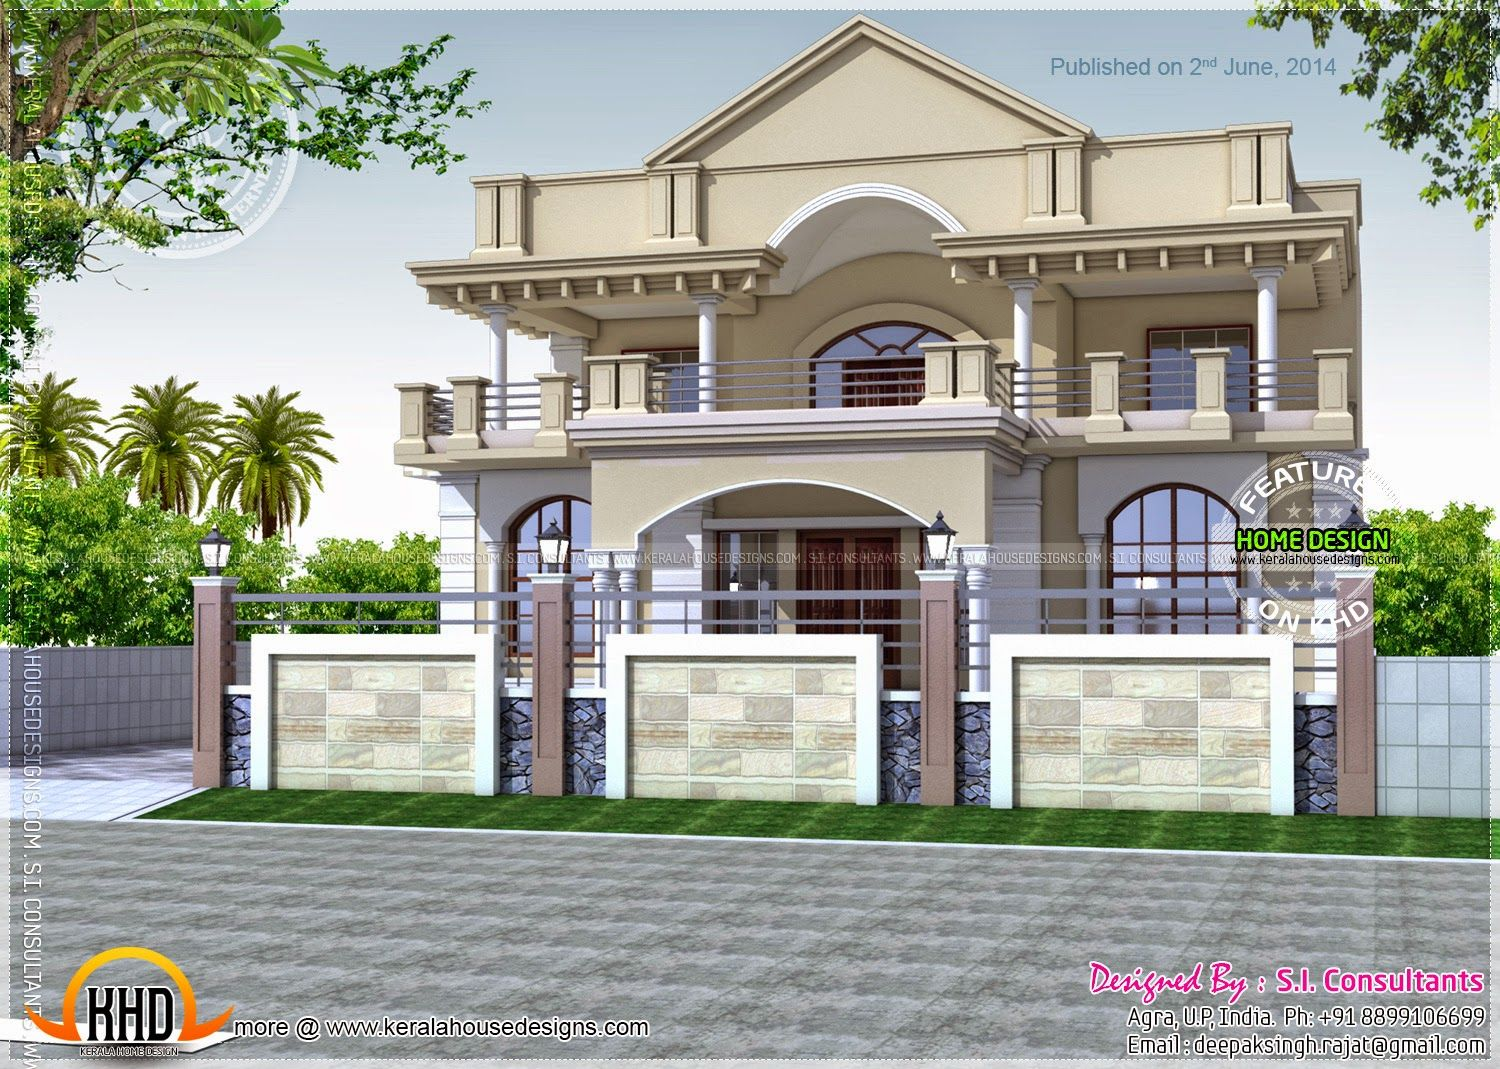 North Indian exterior house ~ Indian House Plans | EntryWay ...